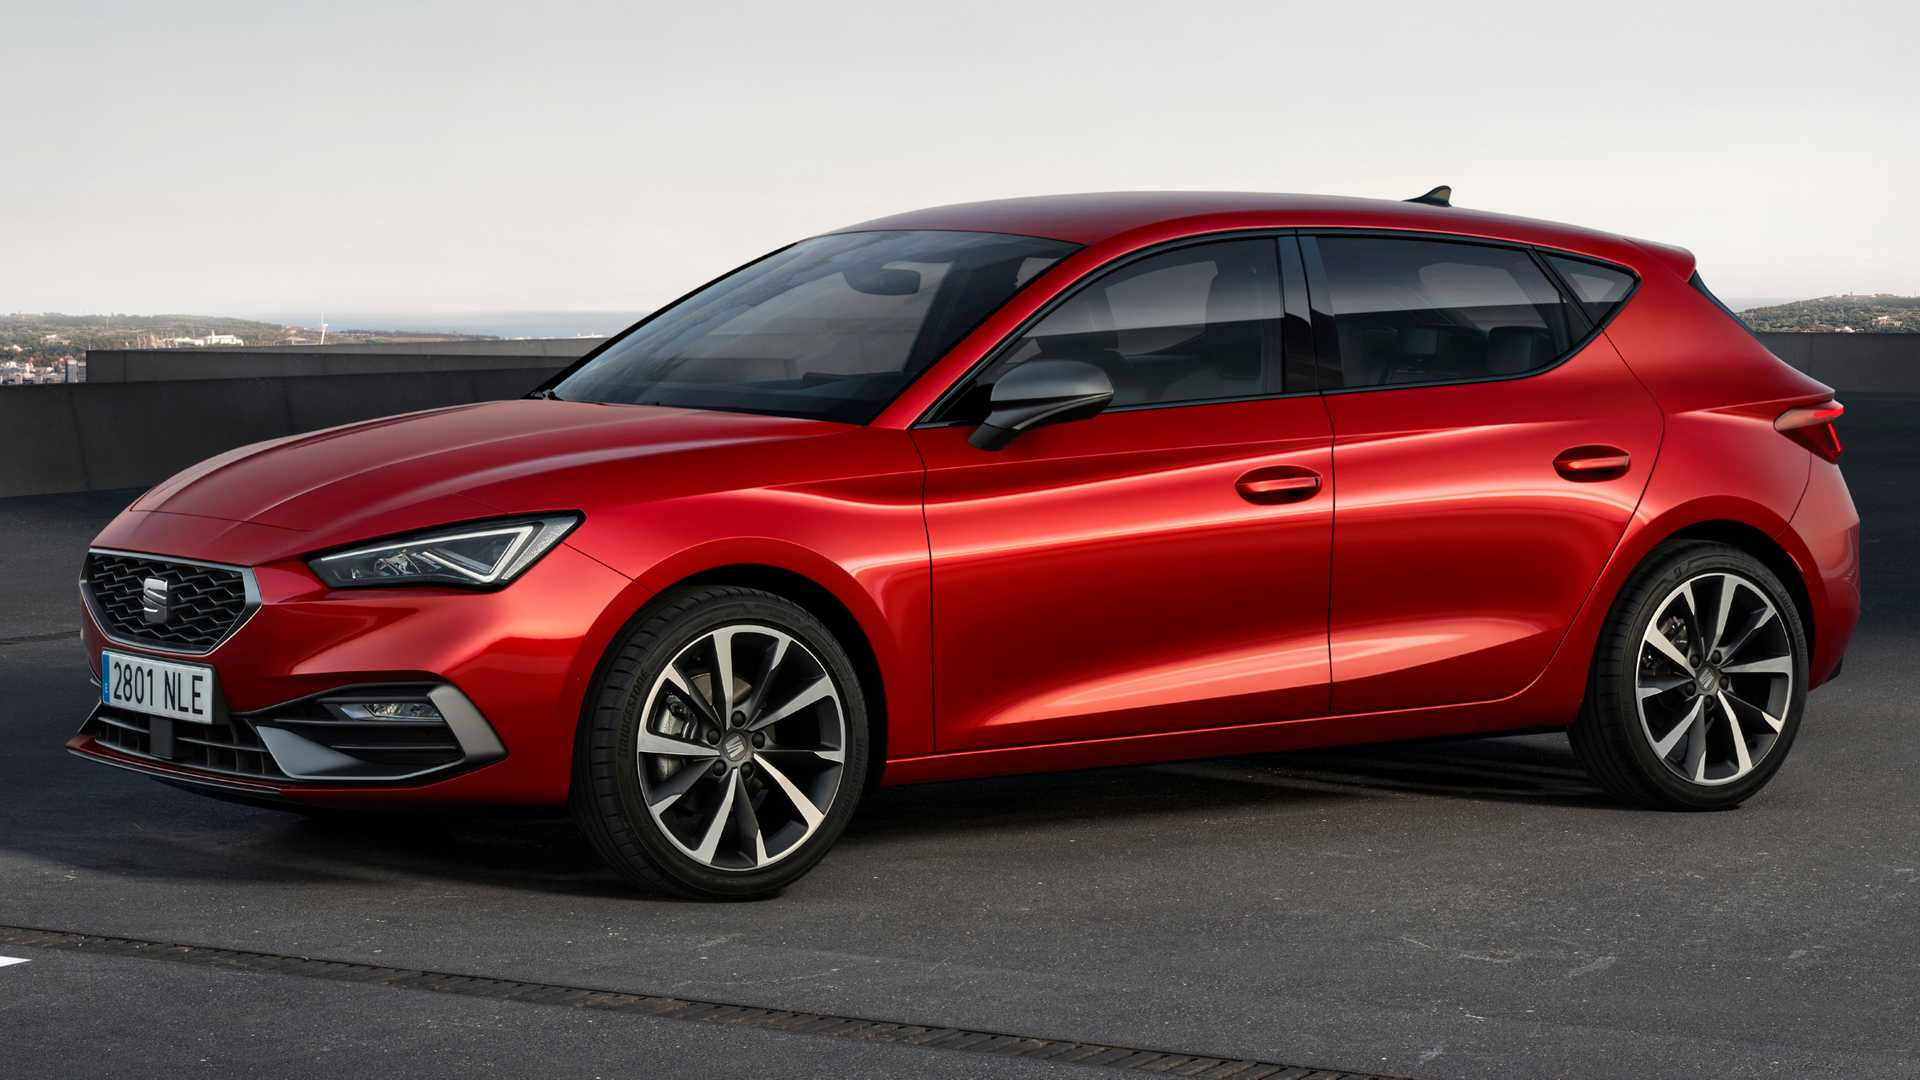 2020 SEAT Leon videos detail the all-new design inside and out